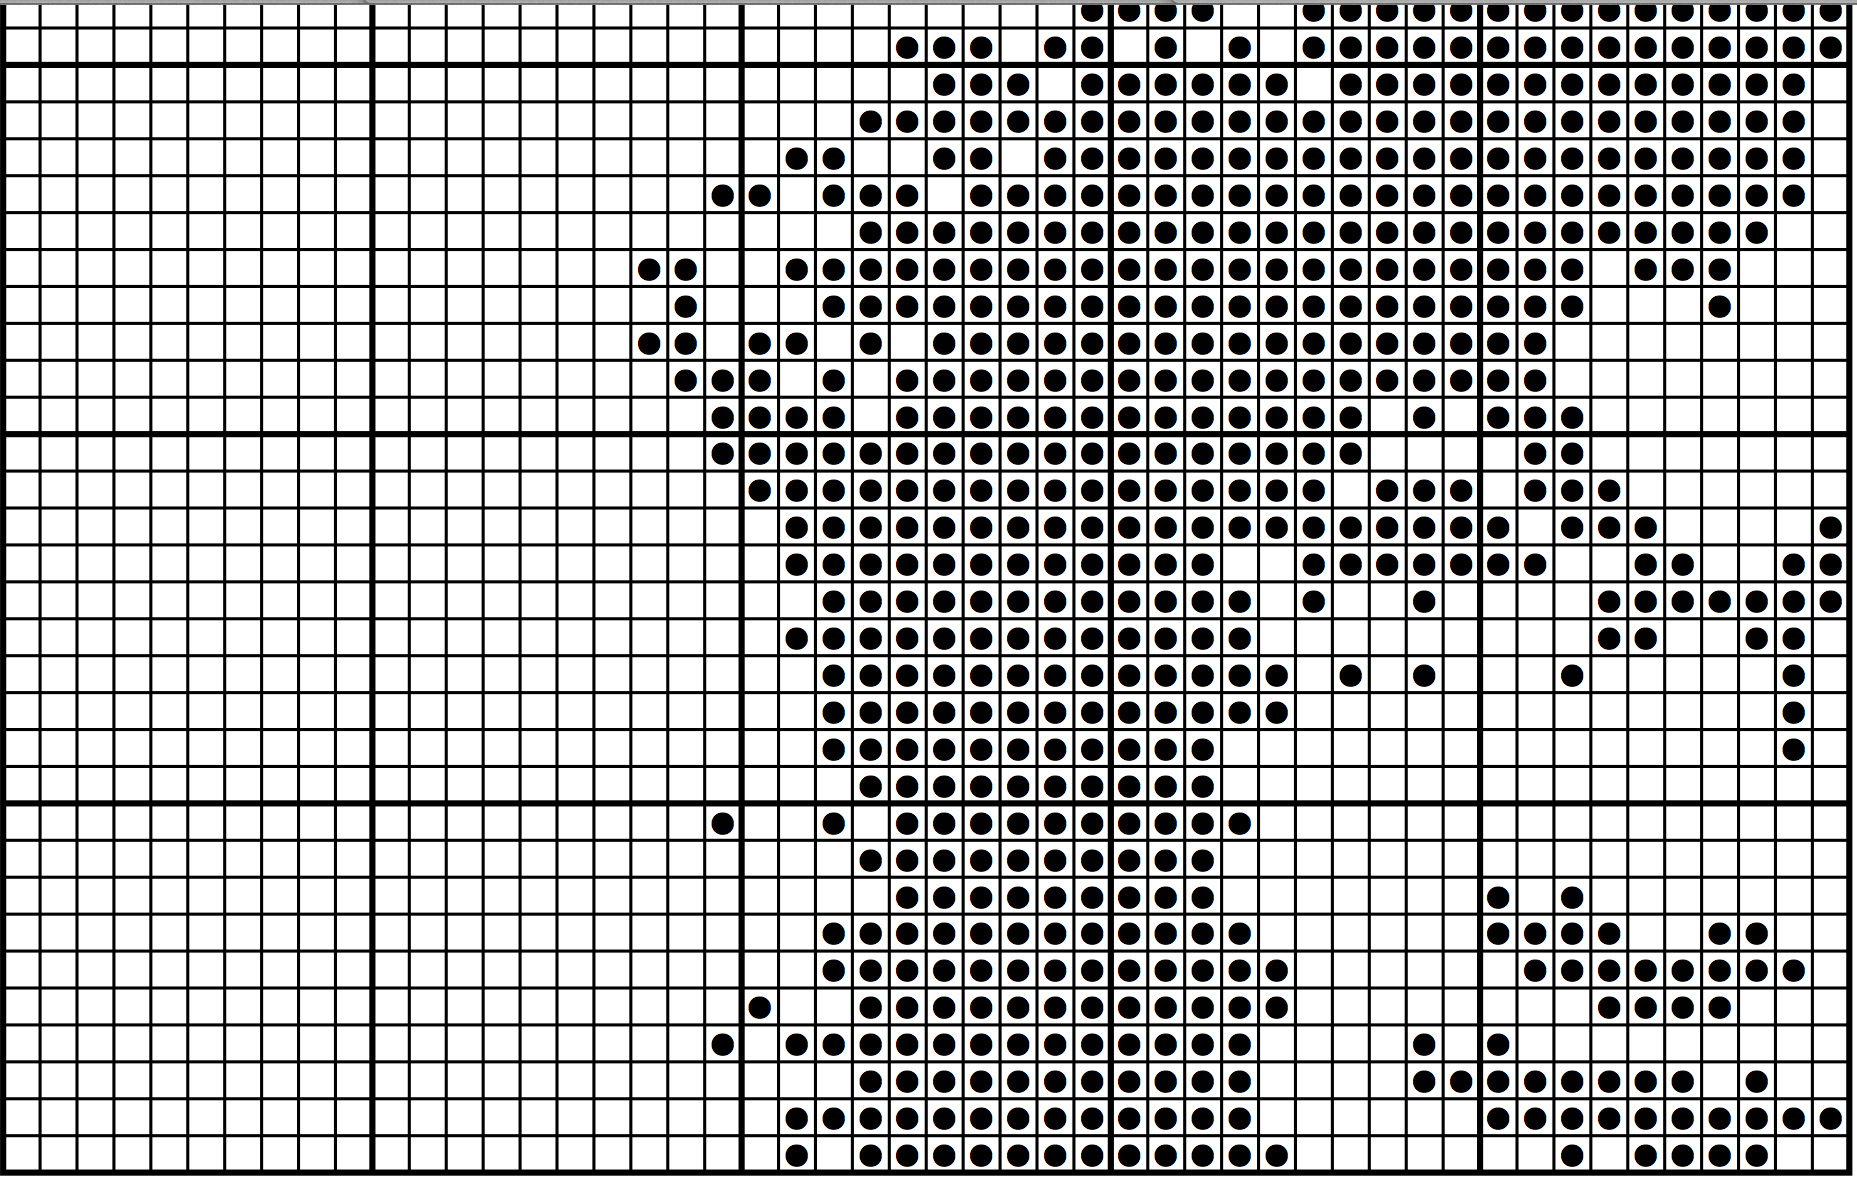 How to create filet crochet charts from your own photos serendipity so i just taped them together and have an easy to follow chart for filet crochet when ive completed my artwork ccuart Gallery